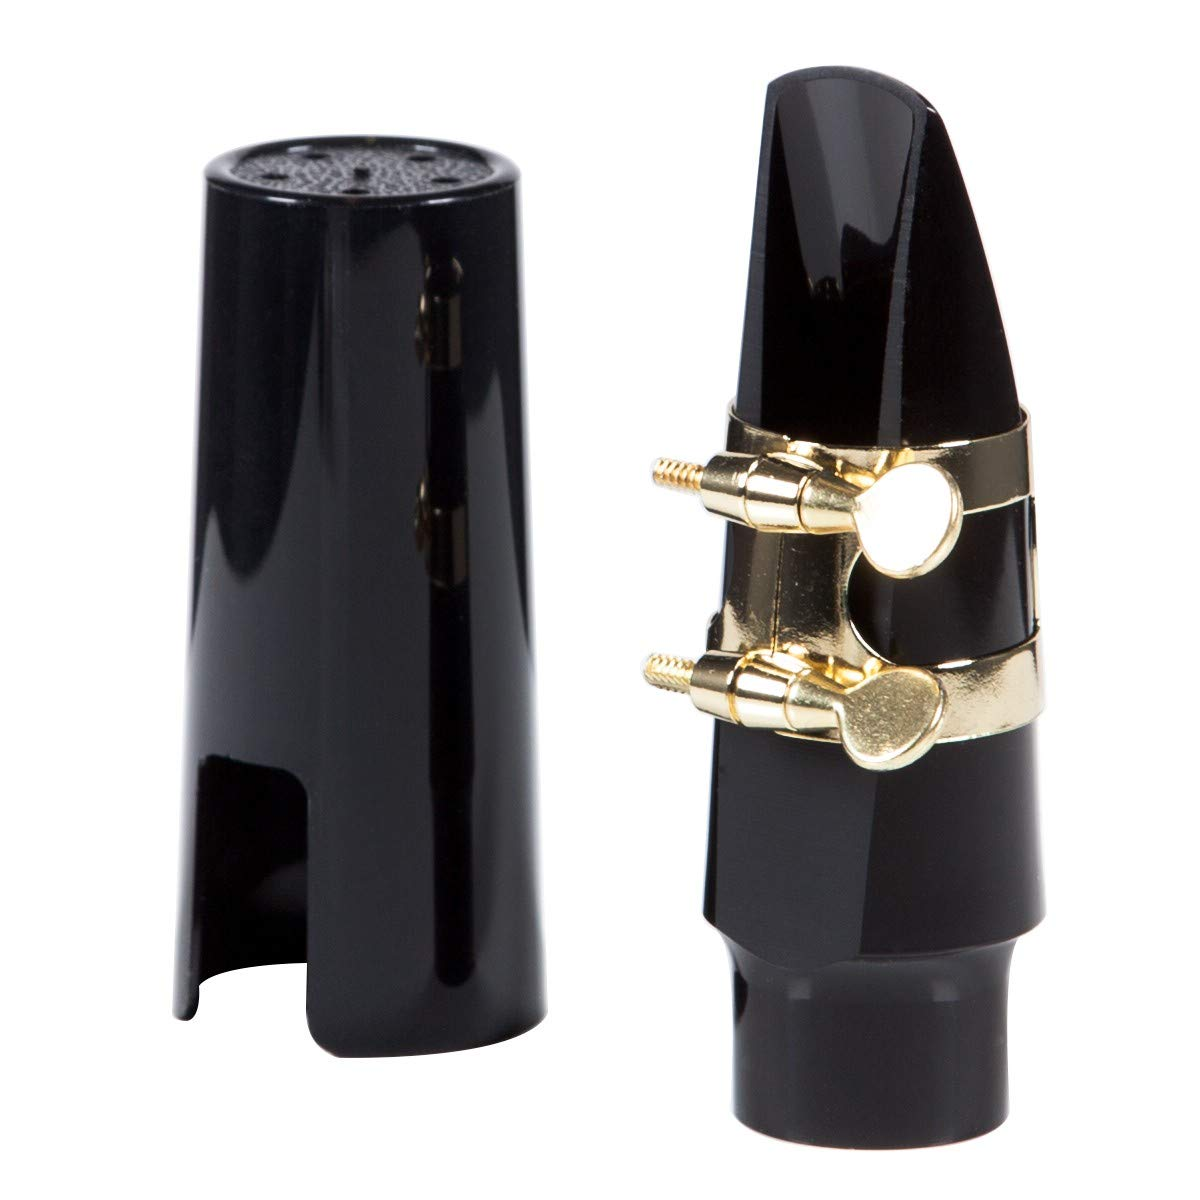 TraderPlus Alto Saxophone Mouthpiece Kit with Ligature, Reed and Cap (Silver)